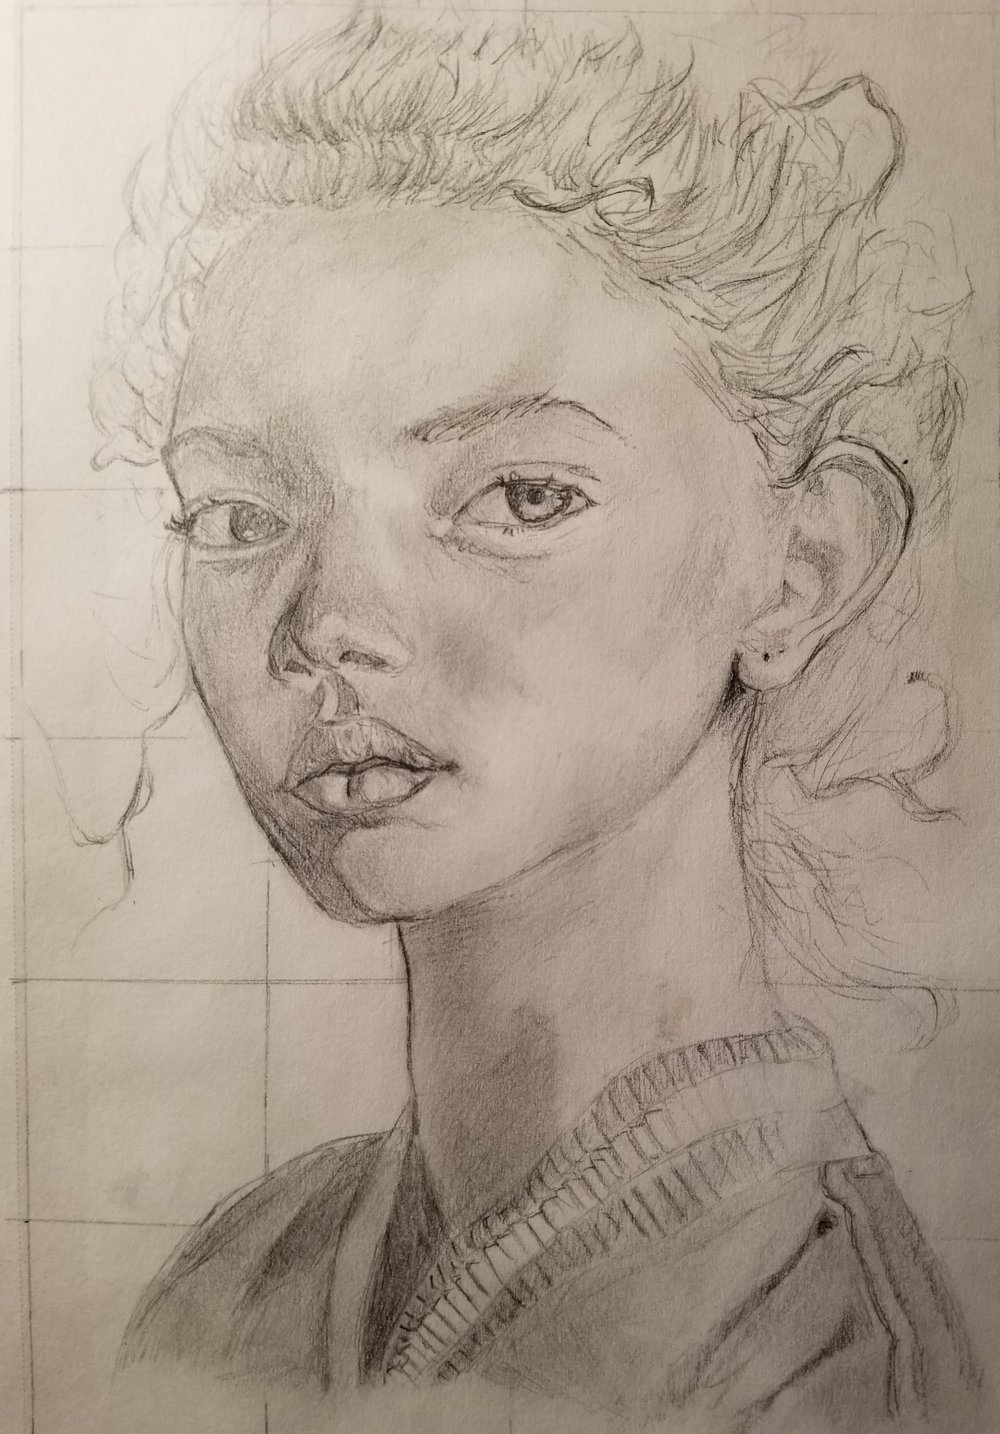 Media type: Pencil drawing